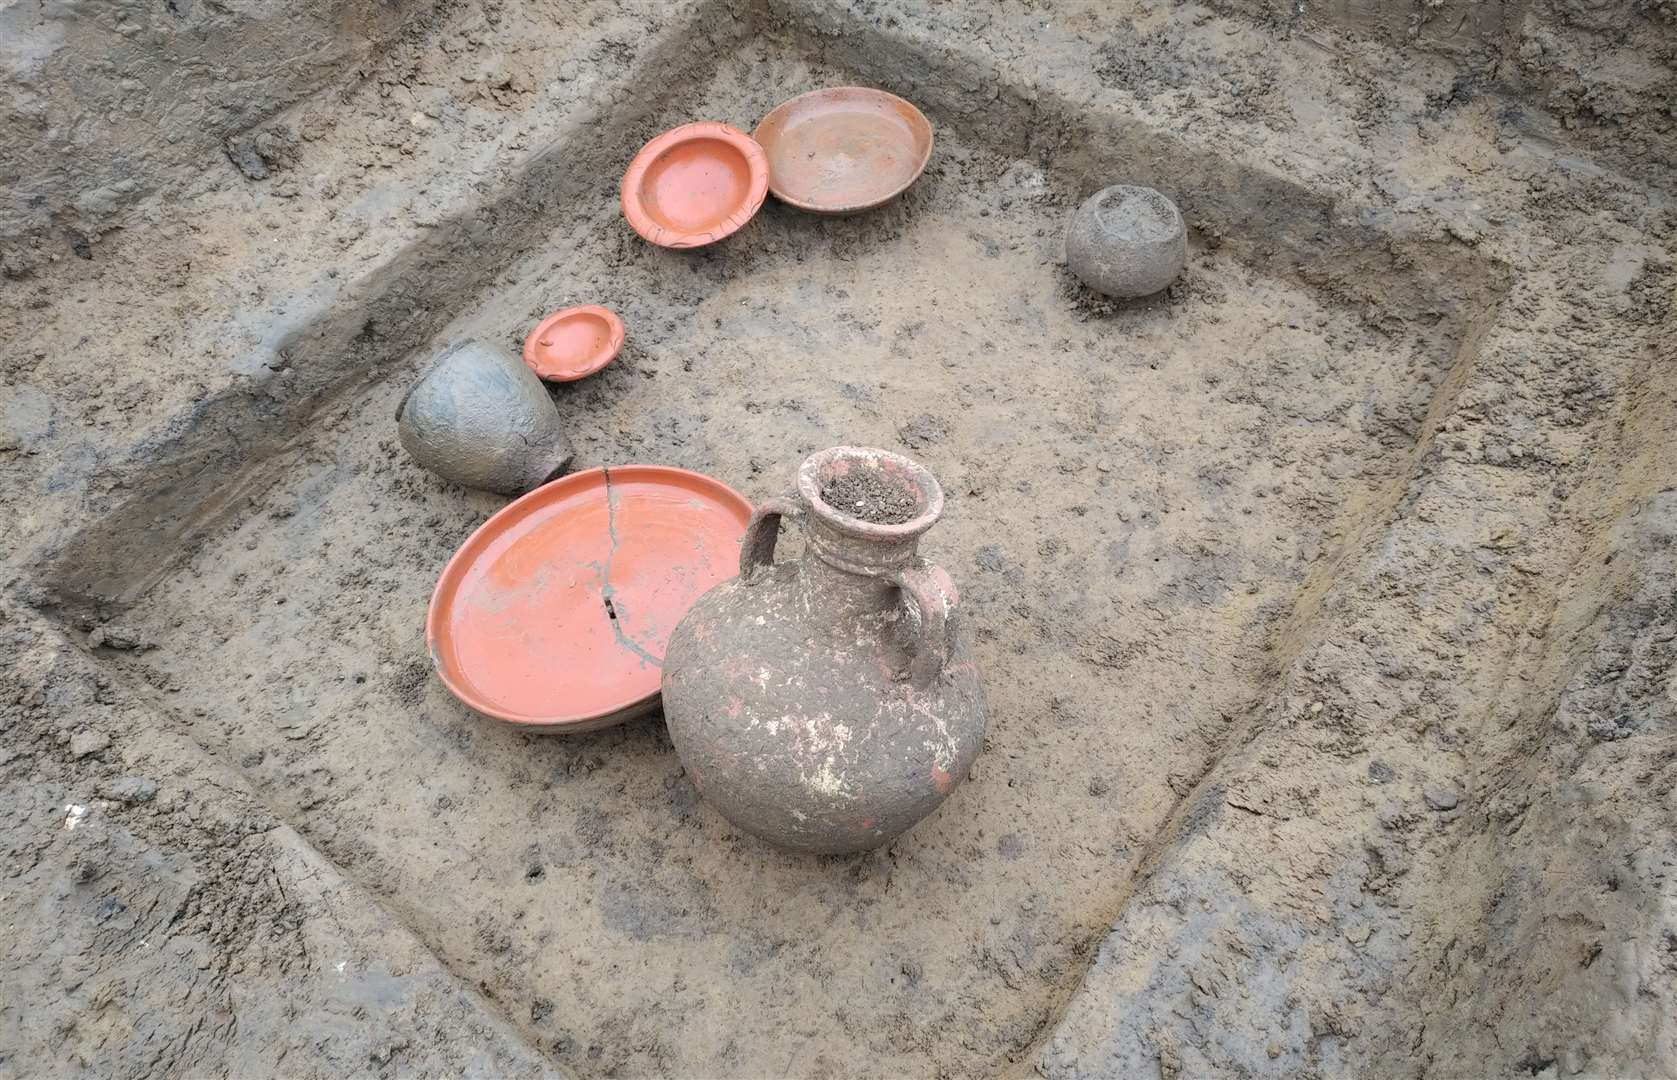 Some of the pots found during the excavation of the site in Newington, near Sittingbourne